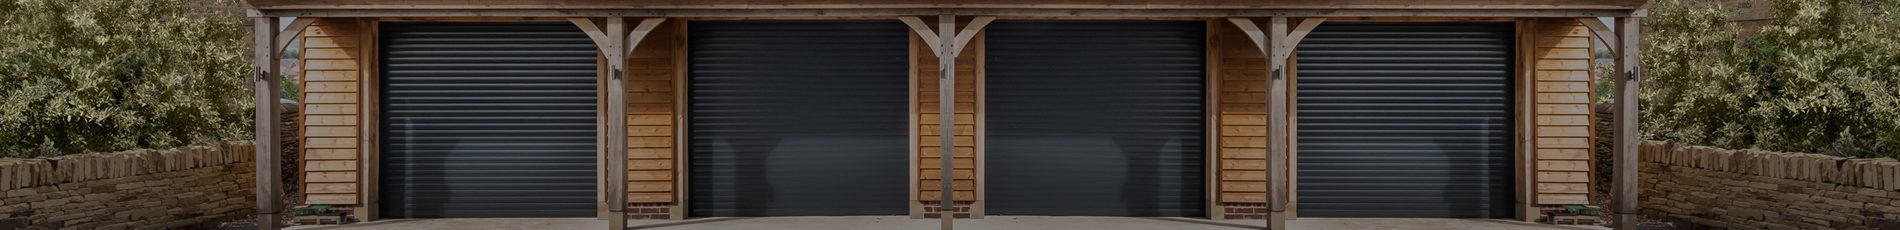 Roller Garage Doors Weston-super-Mare - Franchise, Installer and Stockists Opportunity